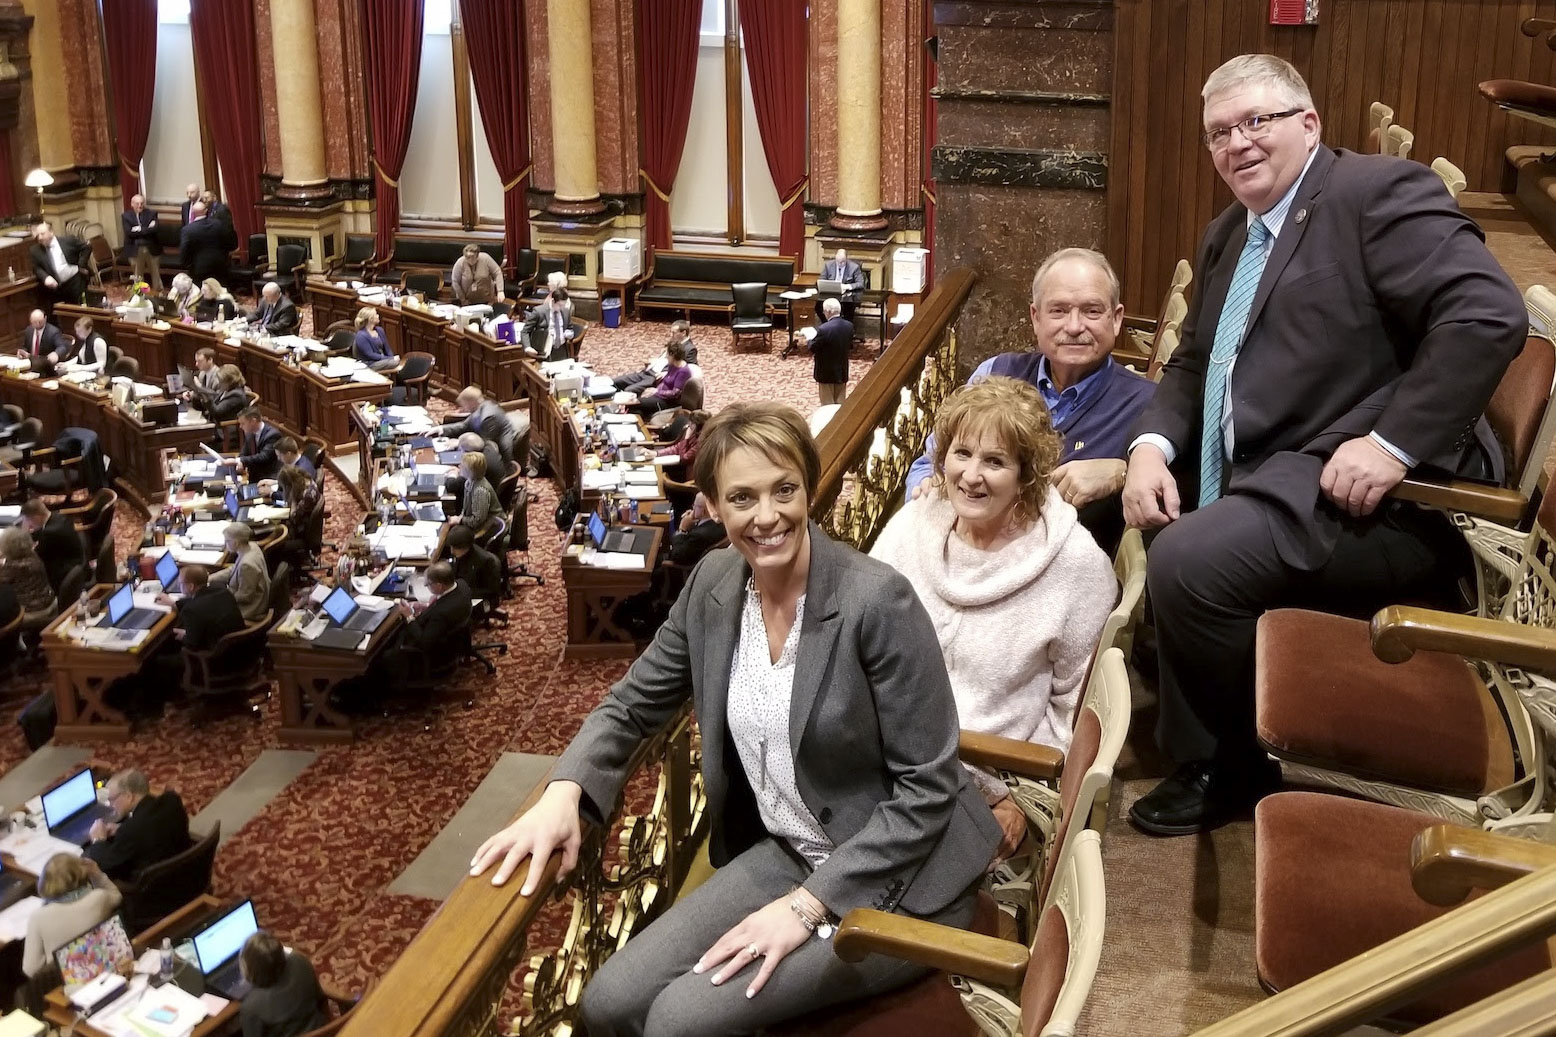 Last week, Jones County Supervisor Ned Rohwedder and his wife Cindy visited the Iowa Capitol while in Des Moines. The Rohwedders are seen here with Sen. Carrie Koelker and Sen. Dan Zumbach. (Photo submitted)